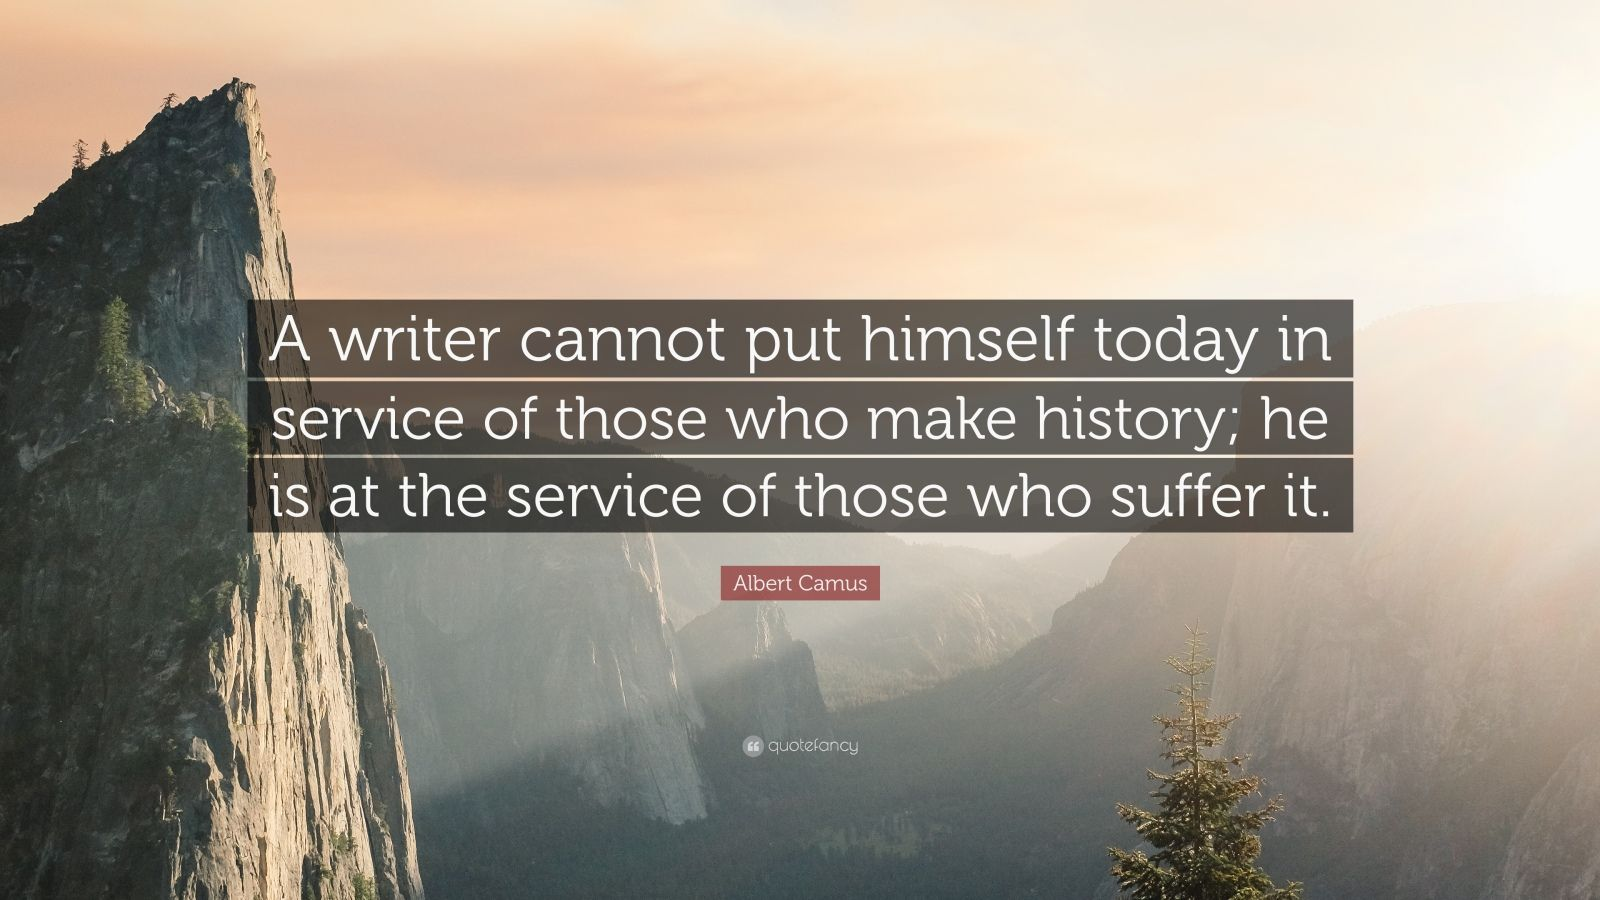 """Albert Camus Quote: """"A writer cannot put himself today in service of those who make history; he is at the service of those who suffer it."""""""